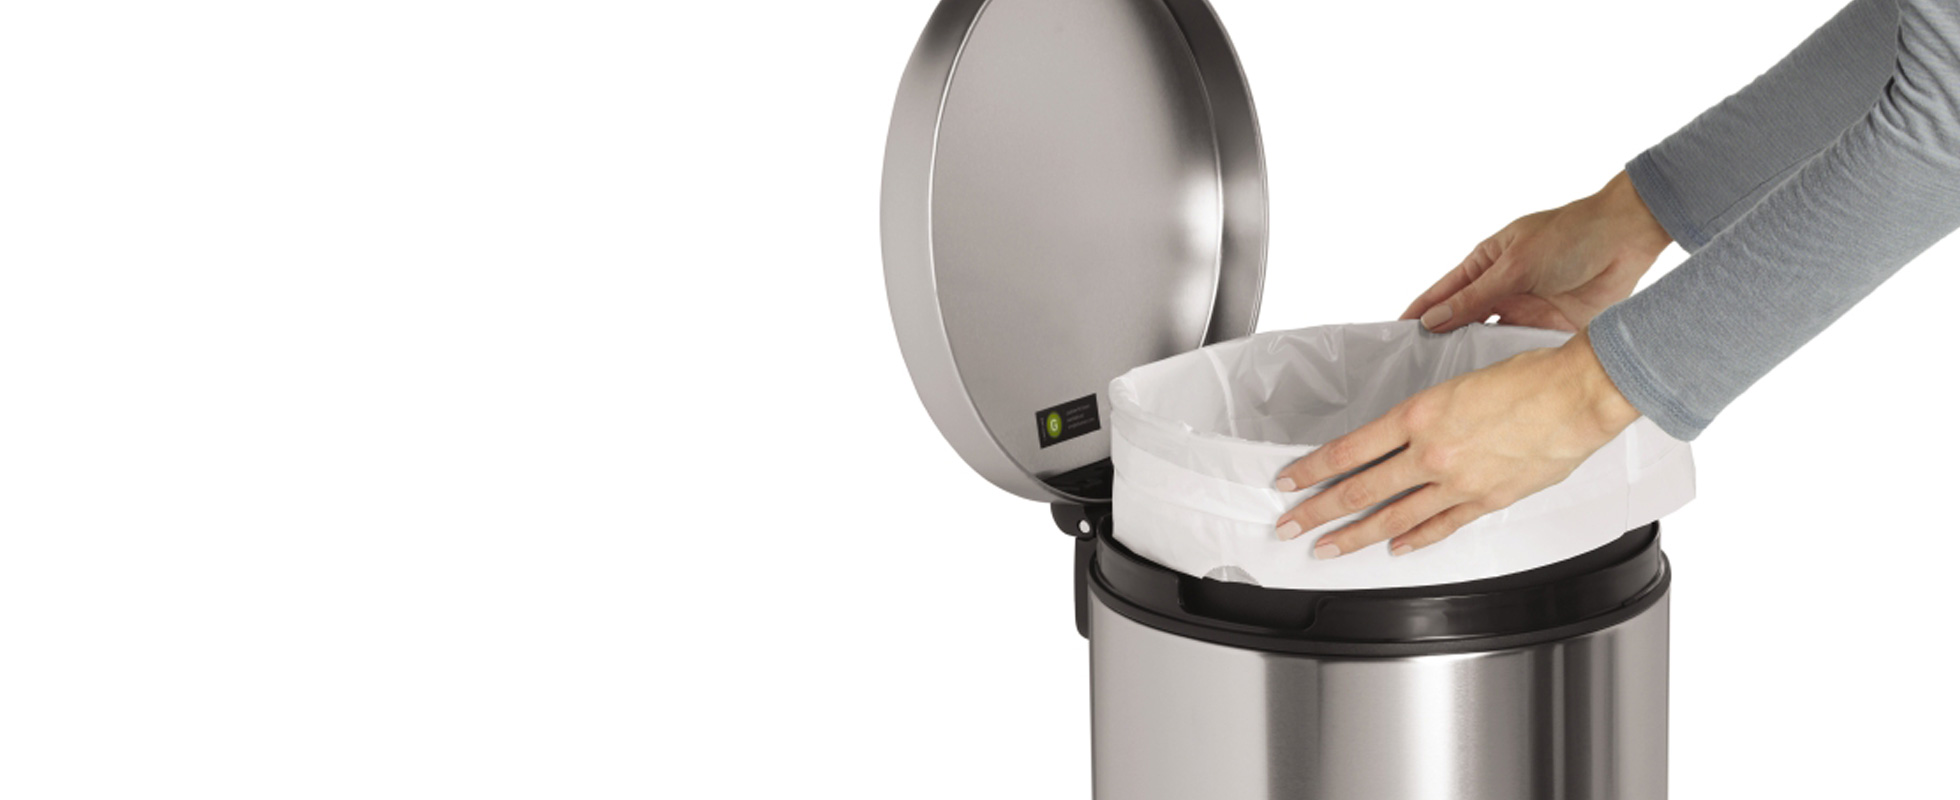 Buy Bathroom Trash Cans from Bed Bath amp Beyond